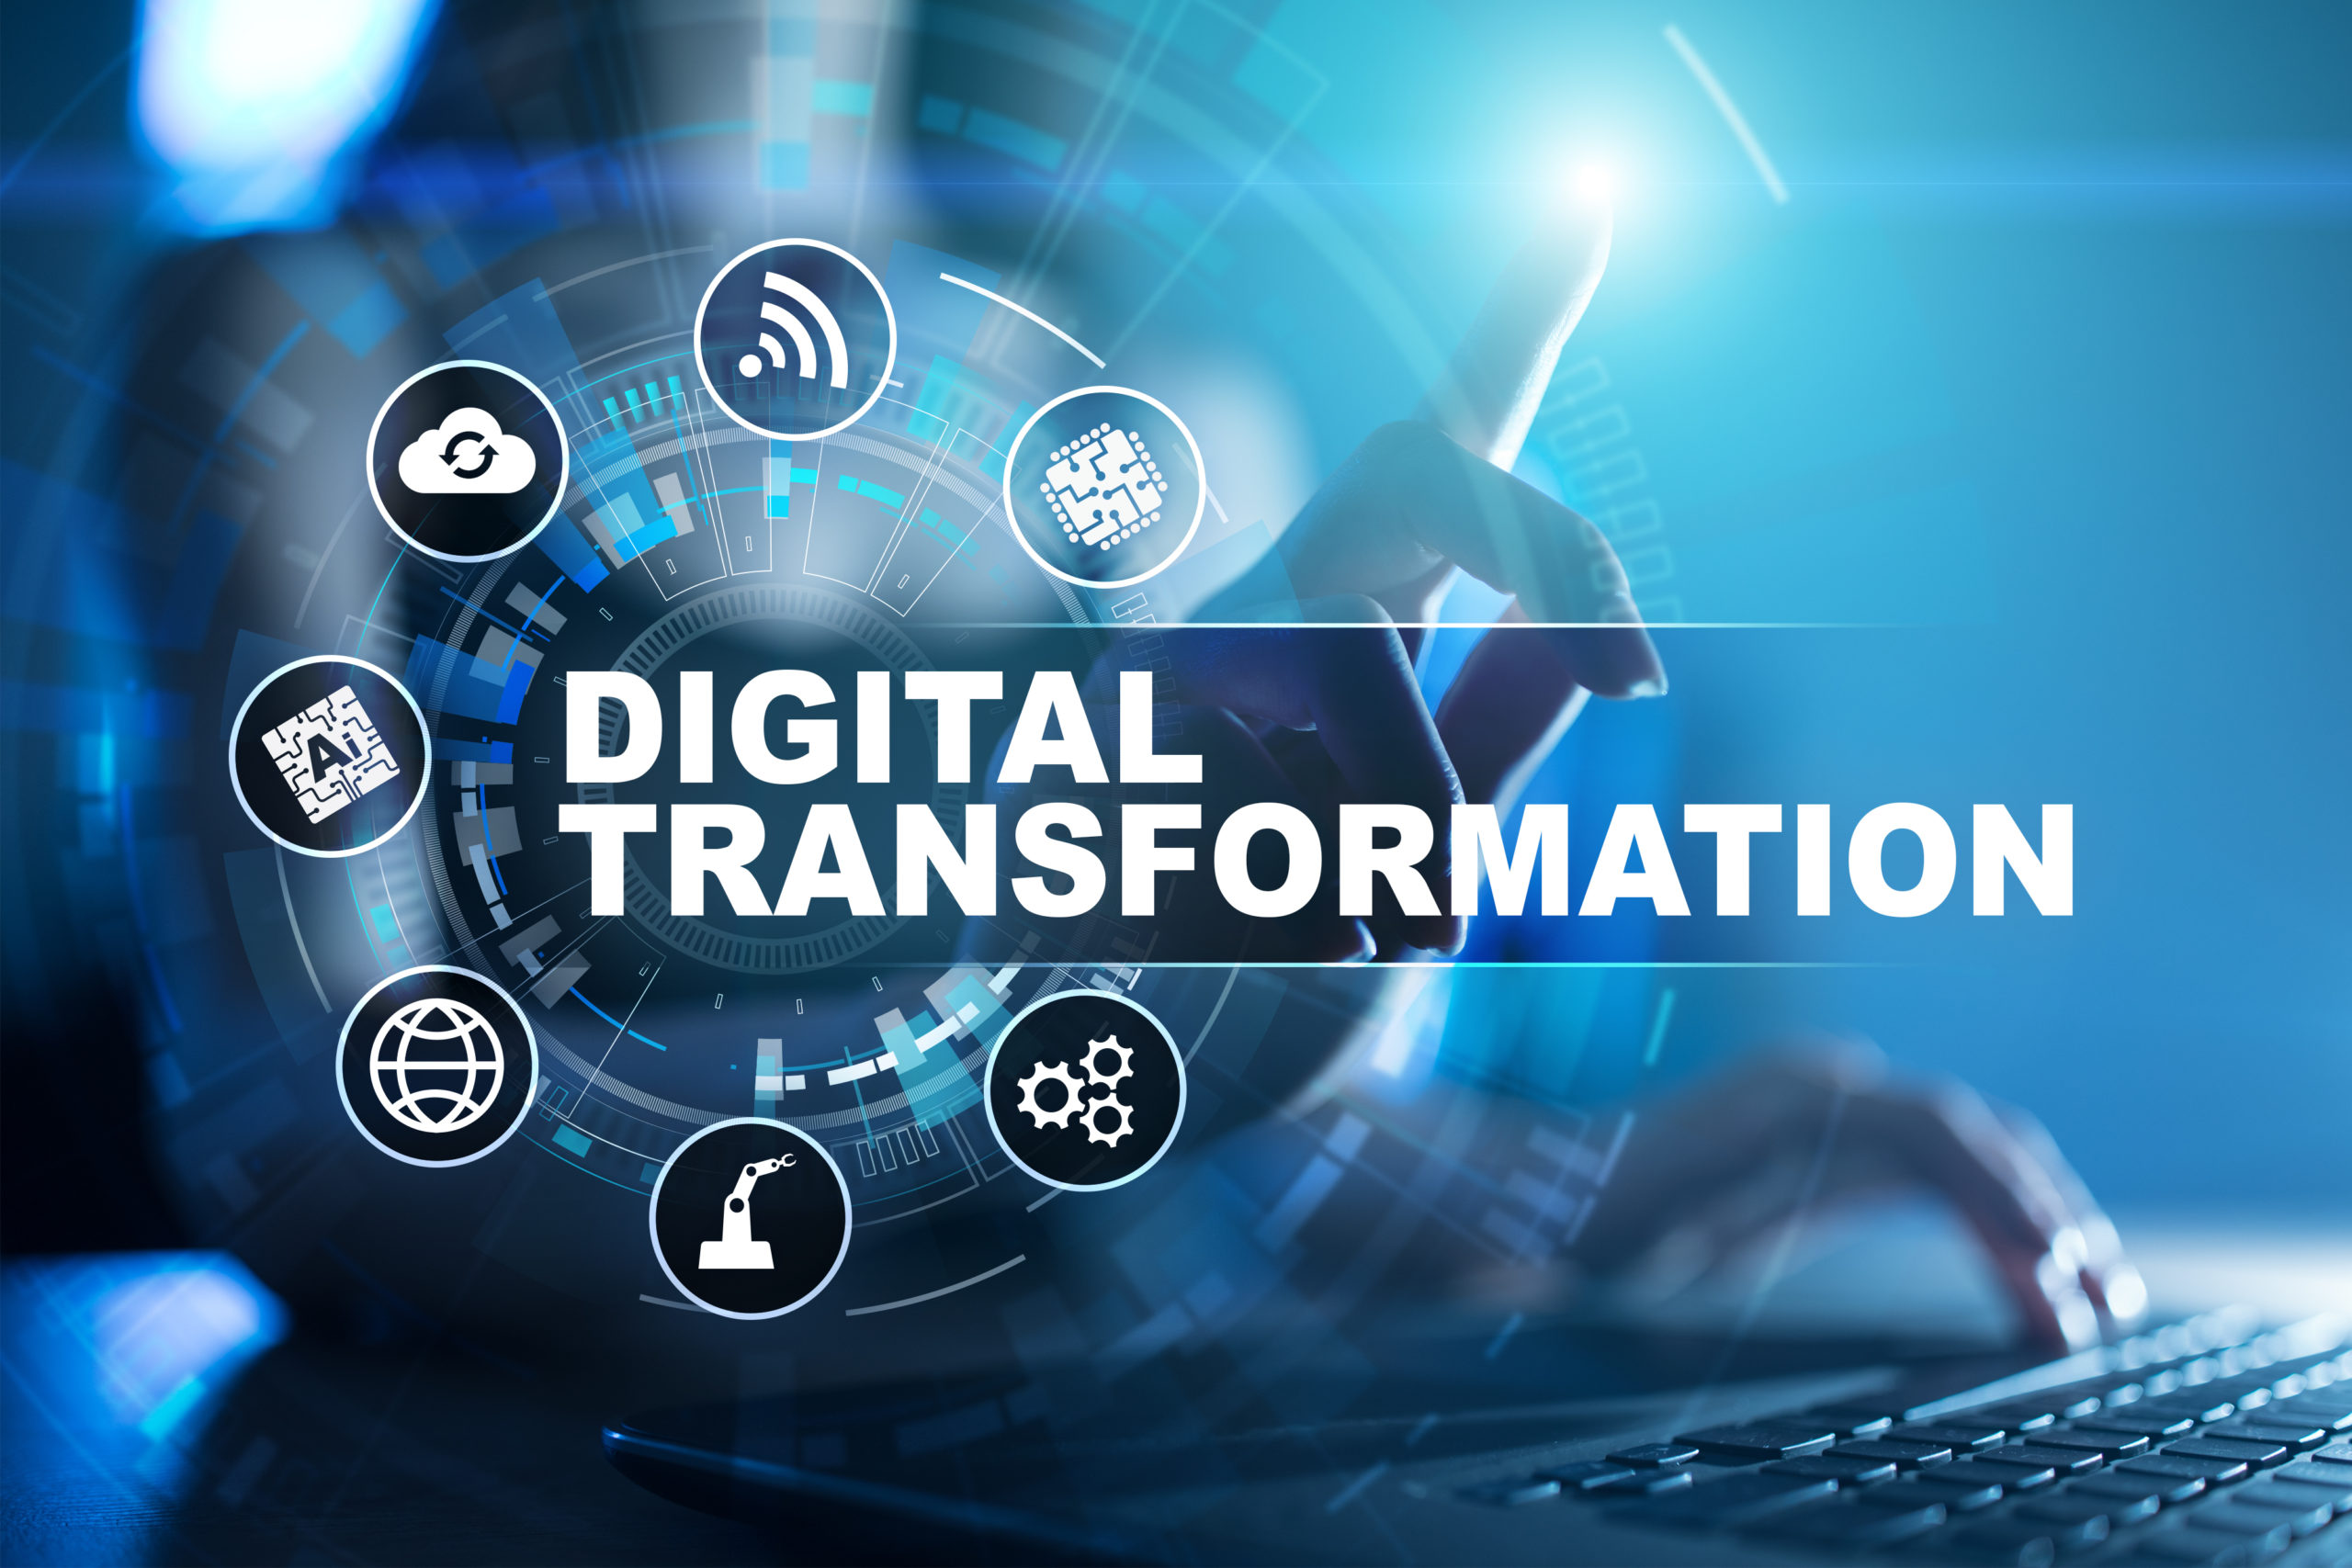 Digital,Transformation,,Concept,Of,Digitization,Of,Business,Processes,And,Modern